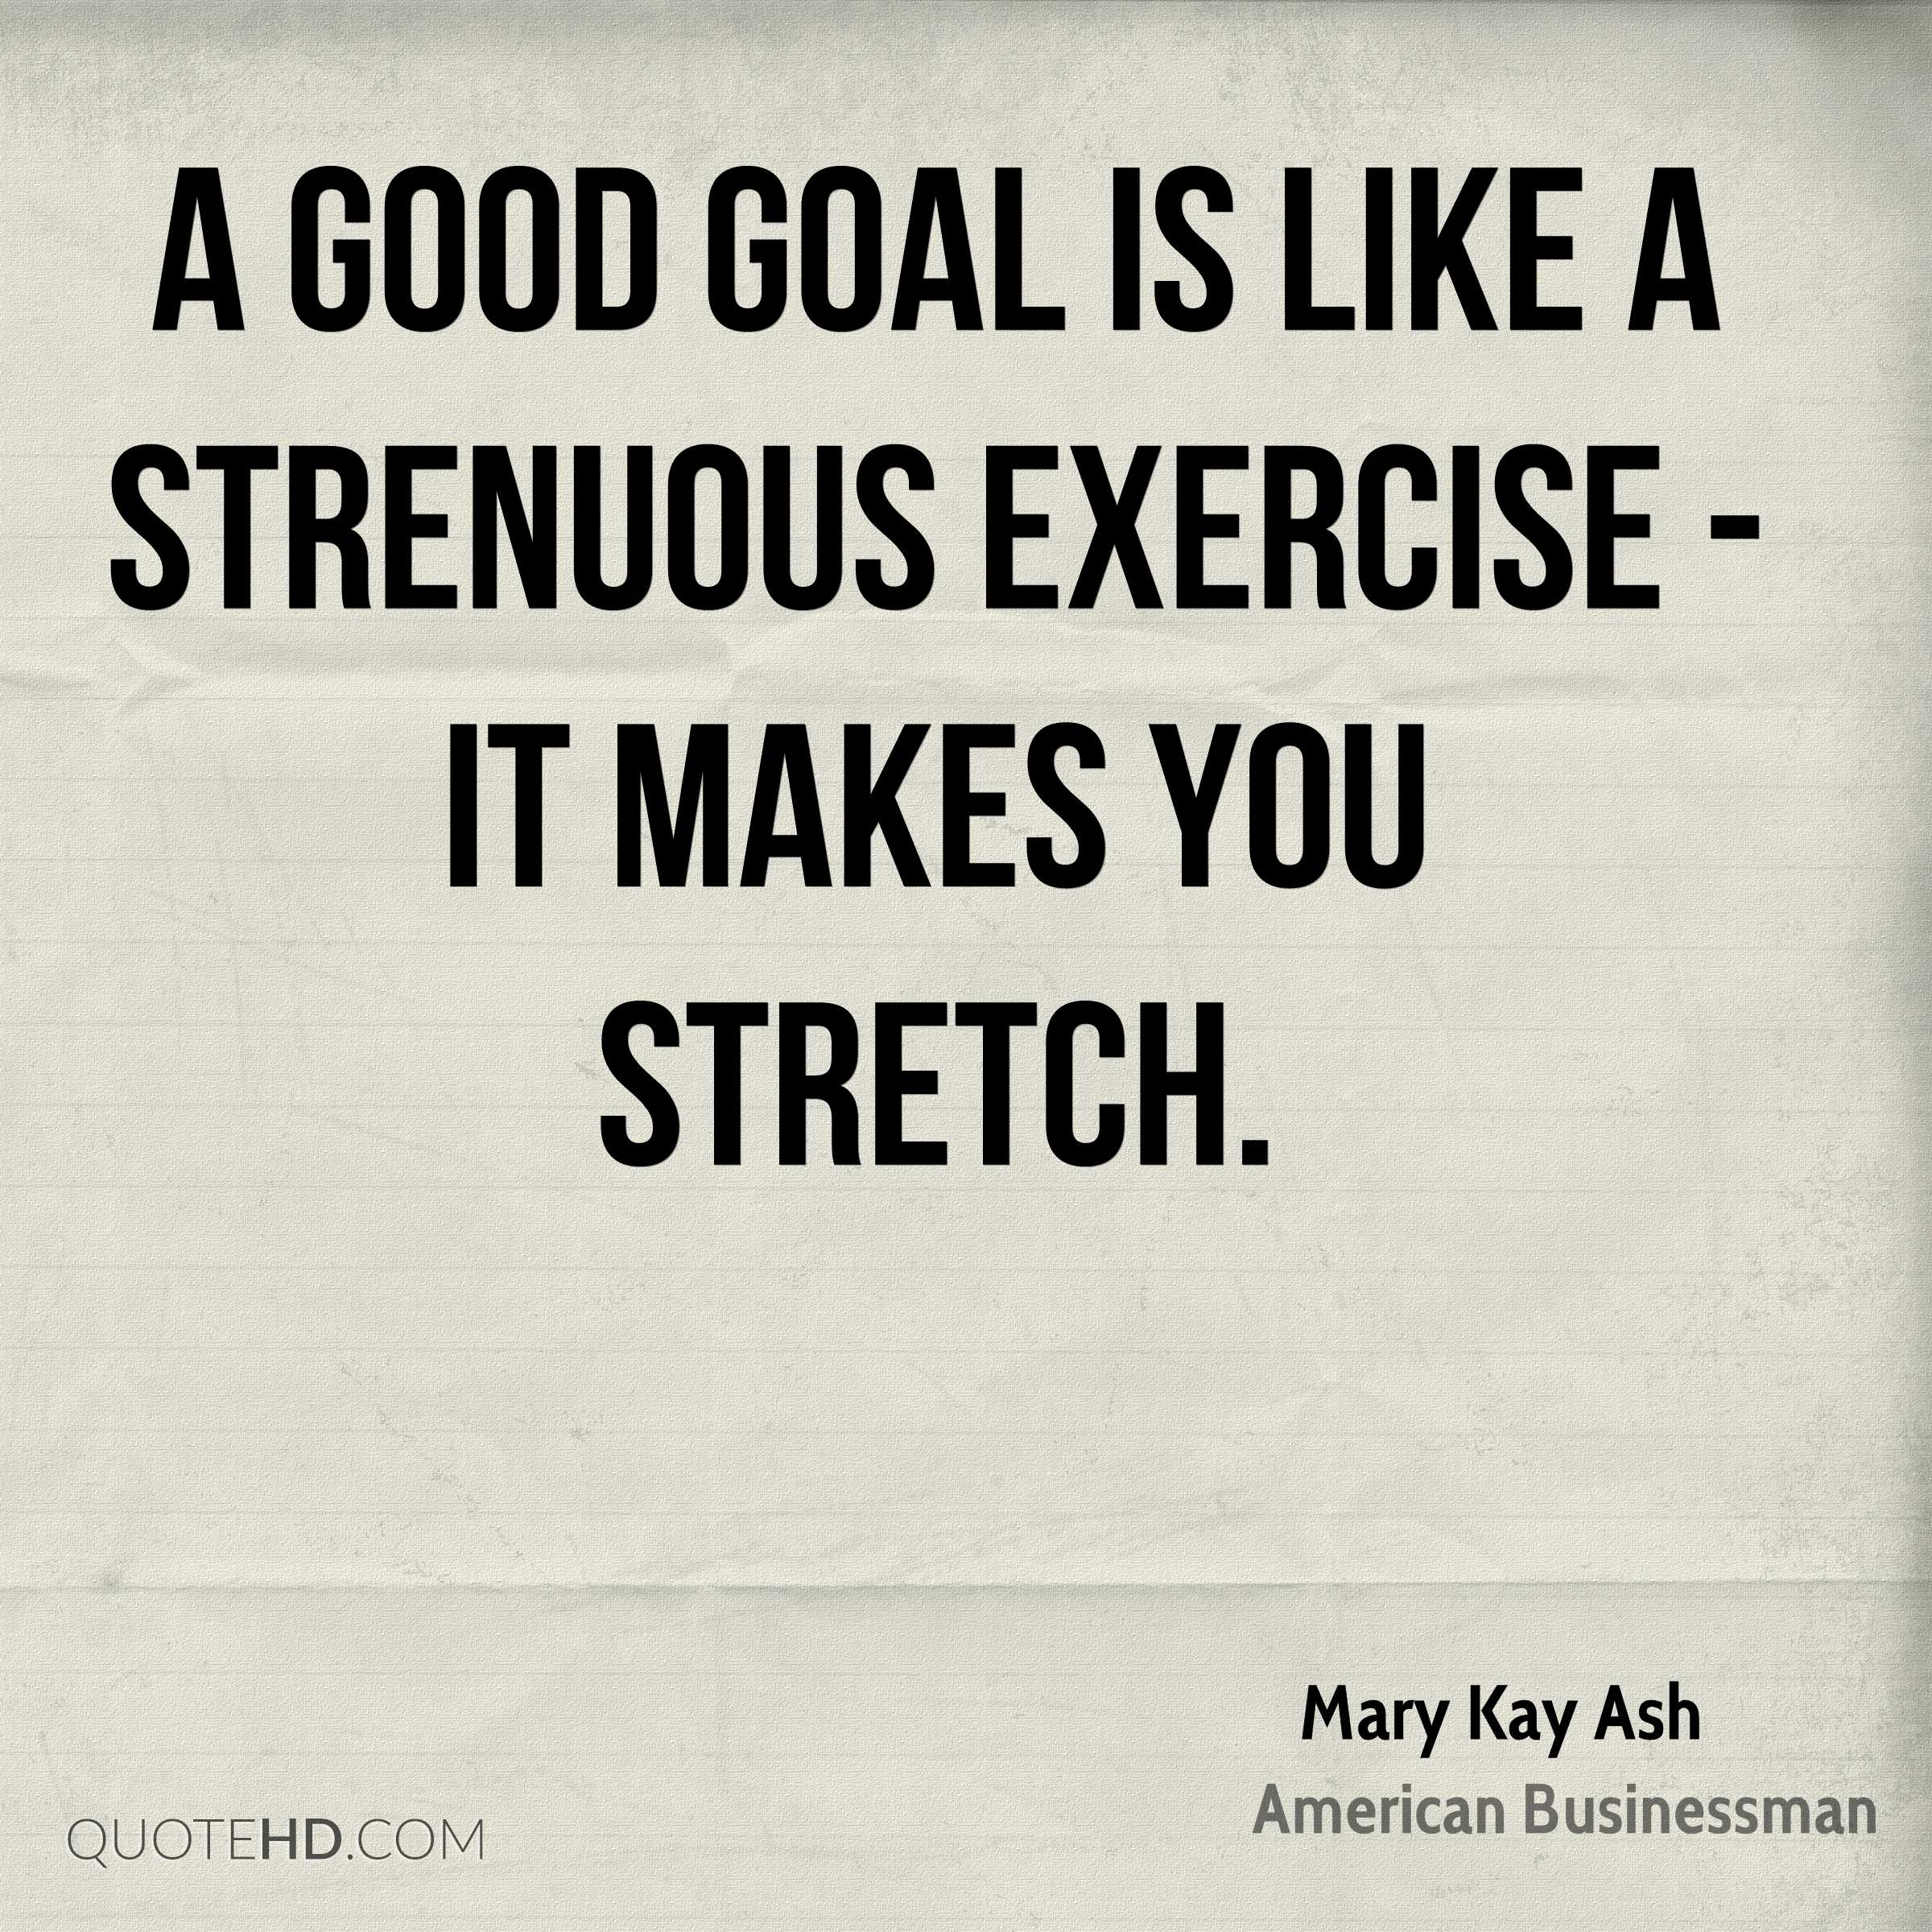 A good goal is like a strenuous exercise - it makes you stretch.